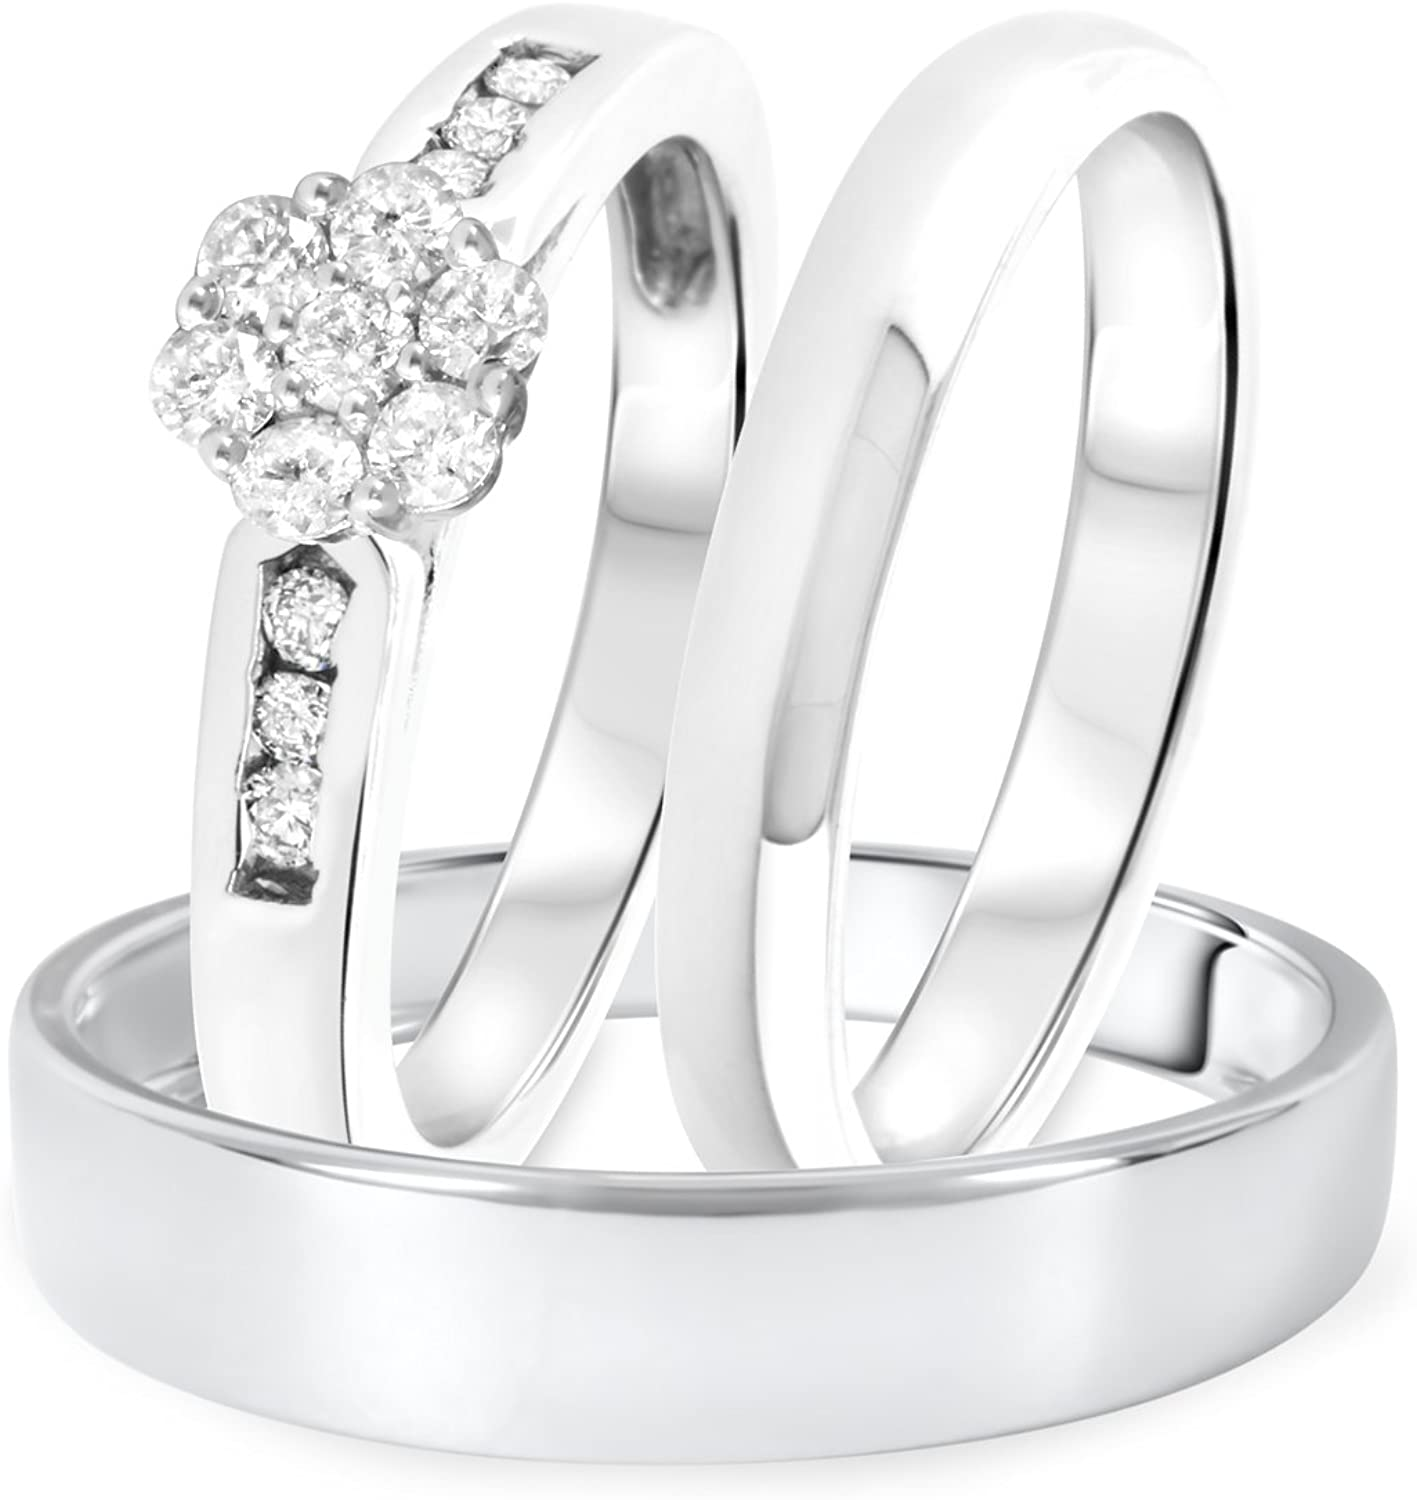 3djewels 14K White gold Over Men's & Women's Engagement Trio Ring Set 1 Ct D VVS1 Diamond